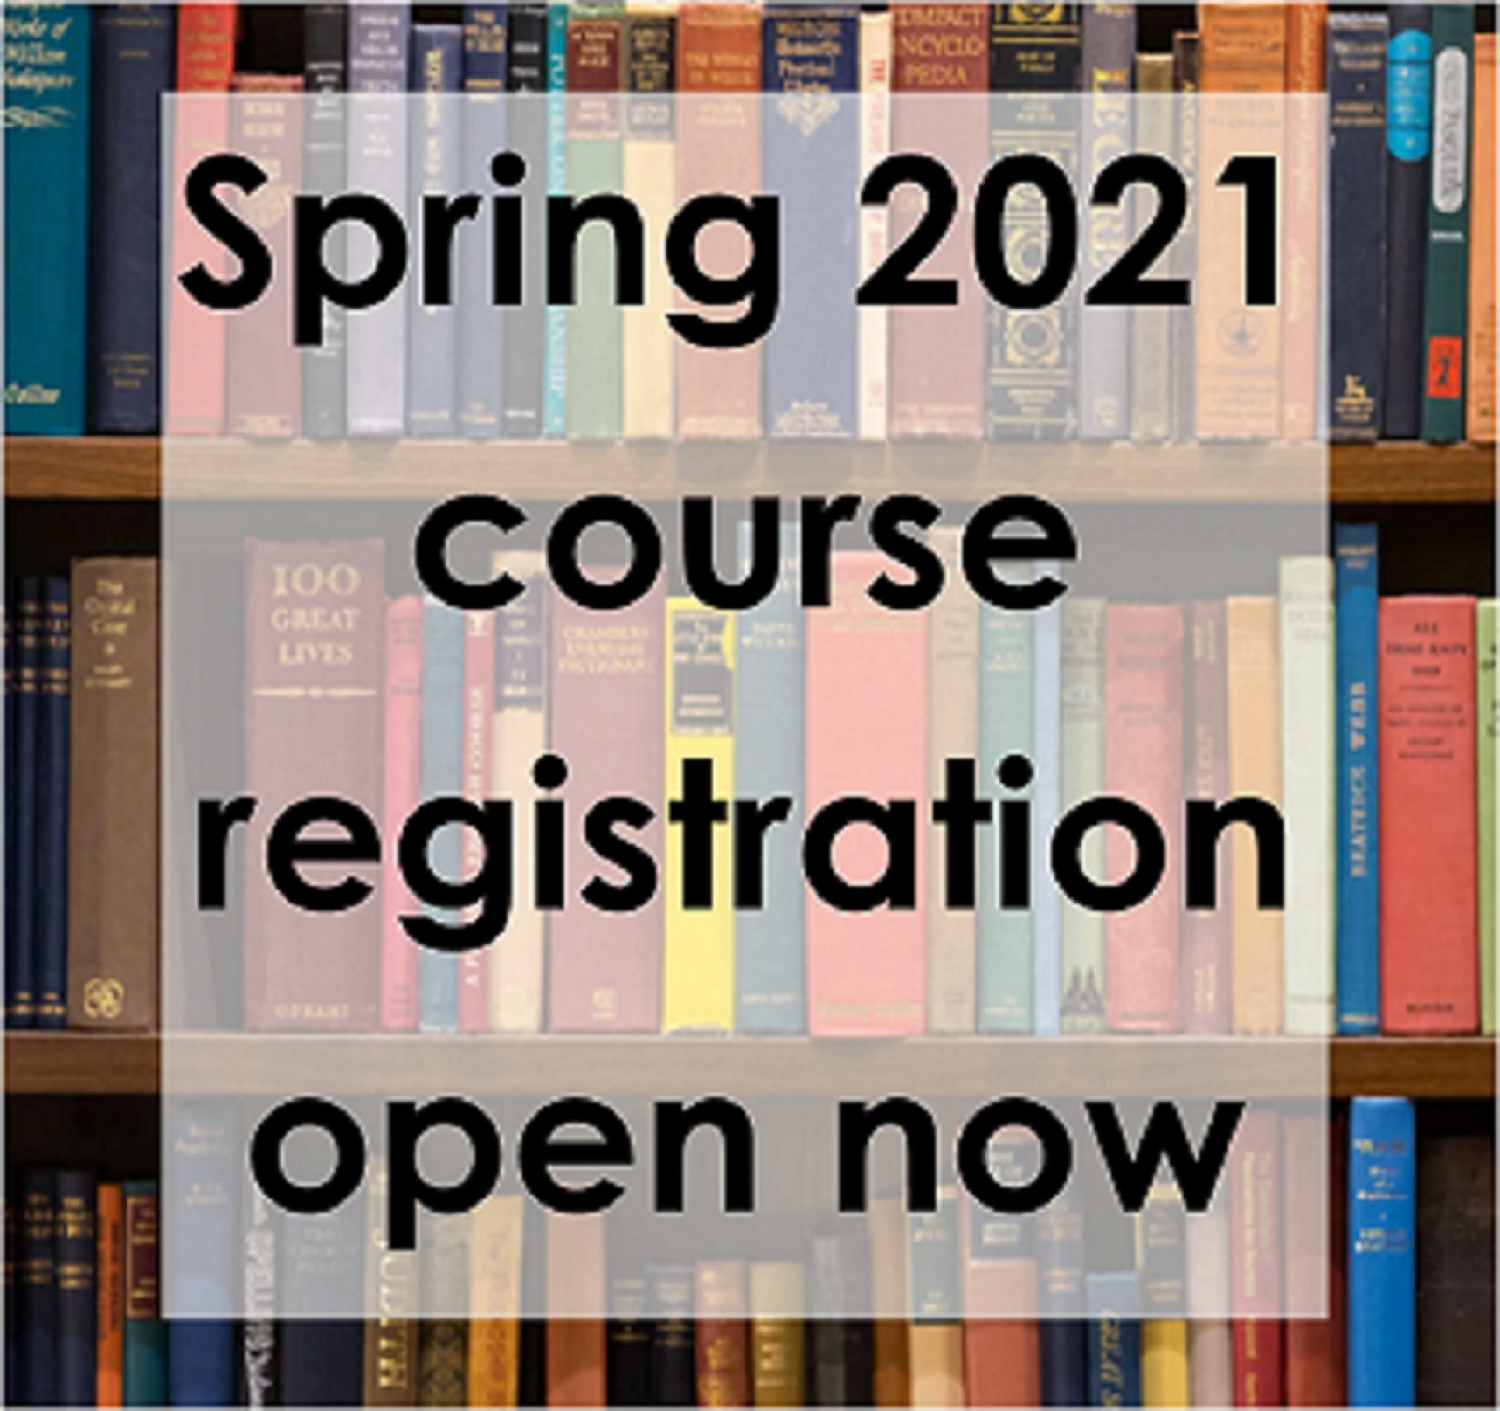 A text box announcing Spring 2021 course registration is overlaid over a shelf of colorful library books